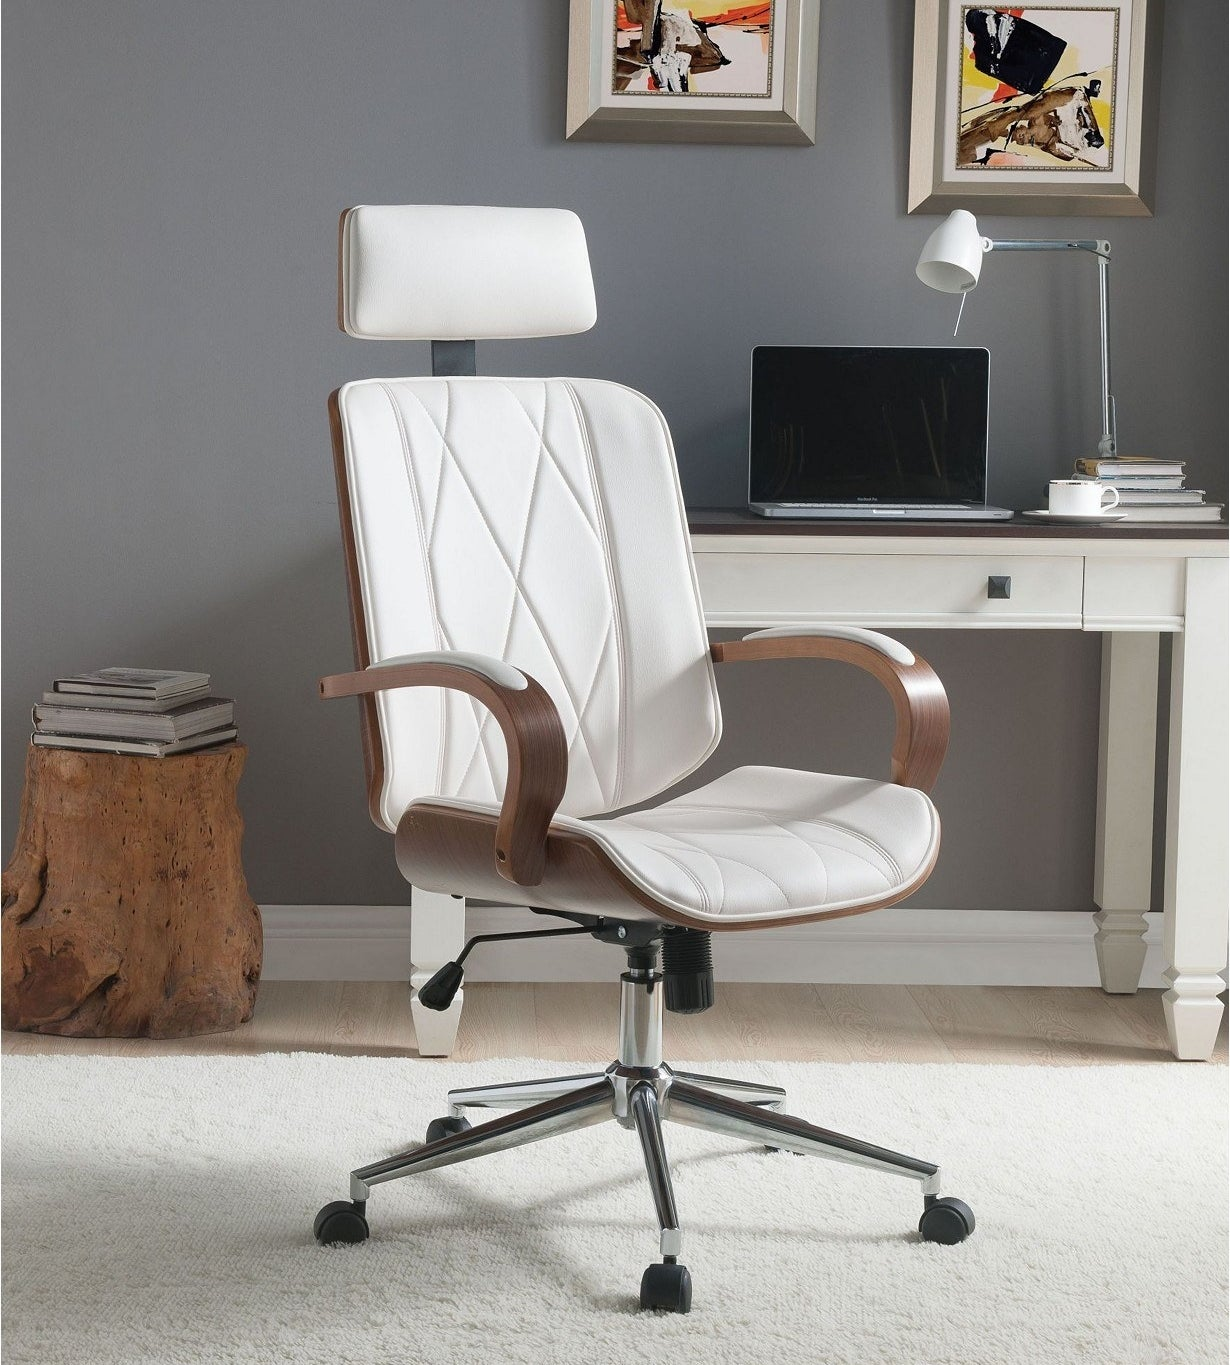 the white office chair which has five wheels